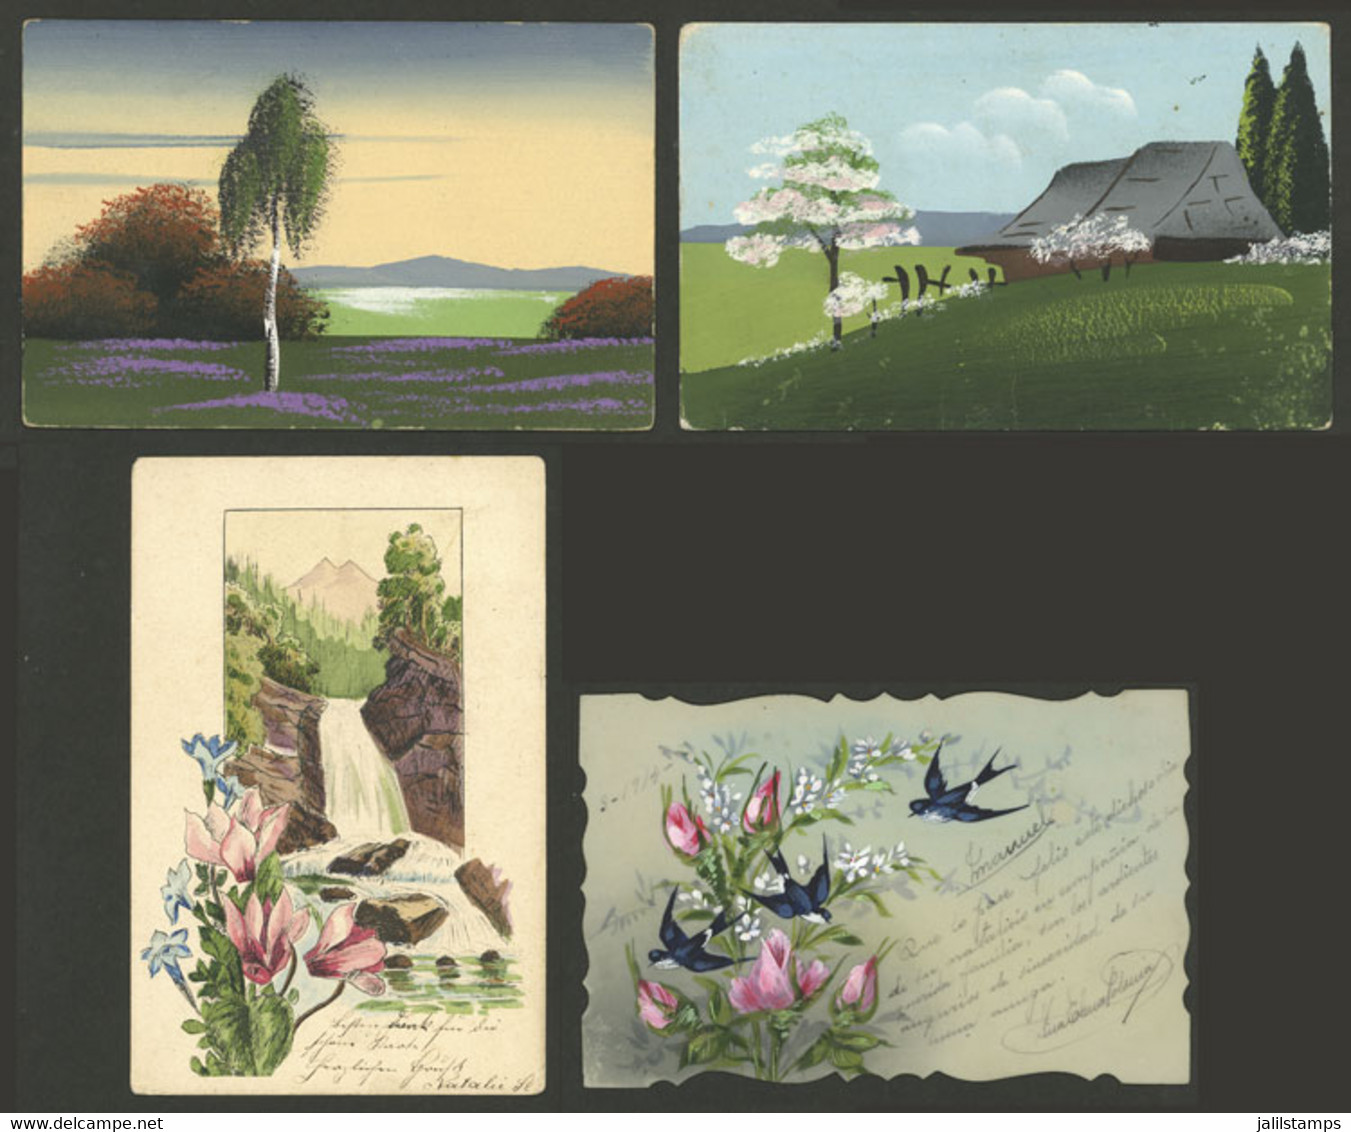 WORLDWIDE: HAND-PAINTED: 16 Old Postcards, Very Fine Quality, Good Opportunity At Low Start! ATTENTION: Please View All  - Mundo